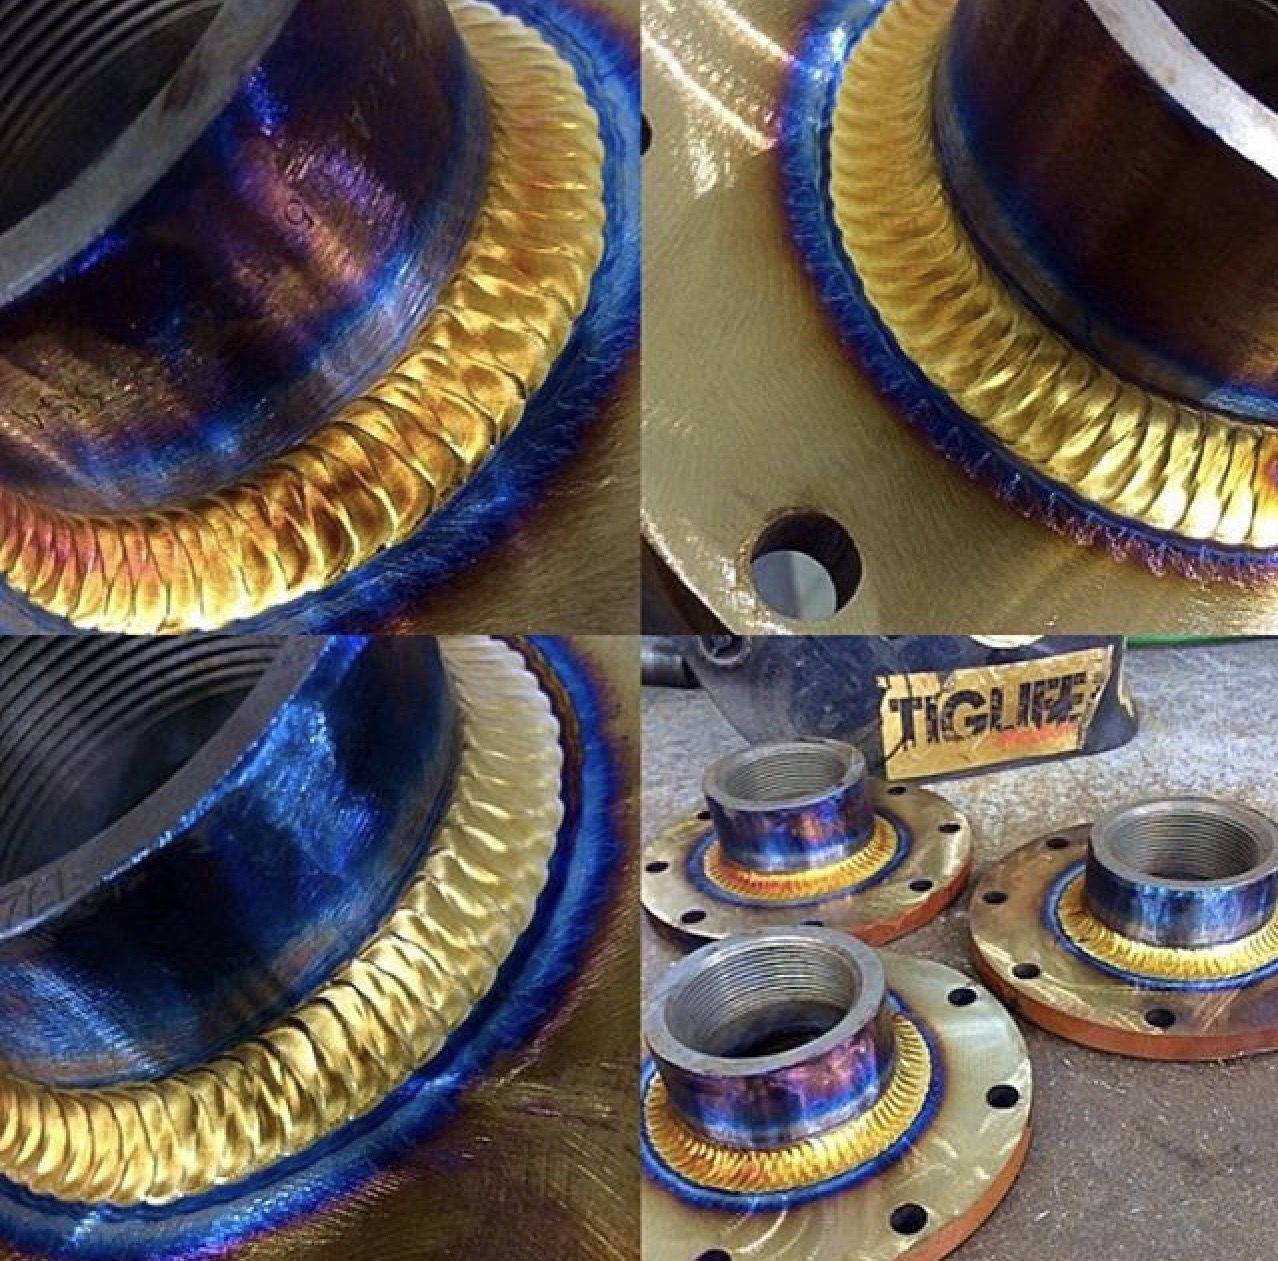 tig welding projects Getting started with motorcycle welding but the ability to adjust the machine to suit the weld is one reason i prefer tig welding for motorcycle projects.